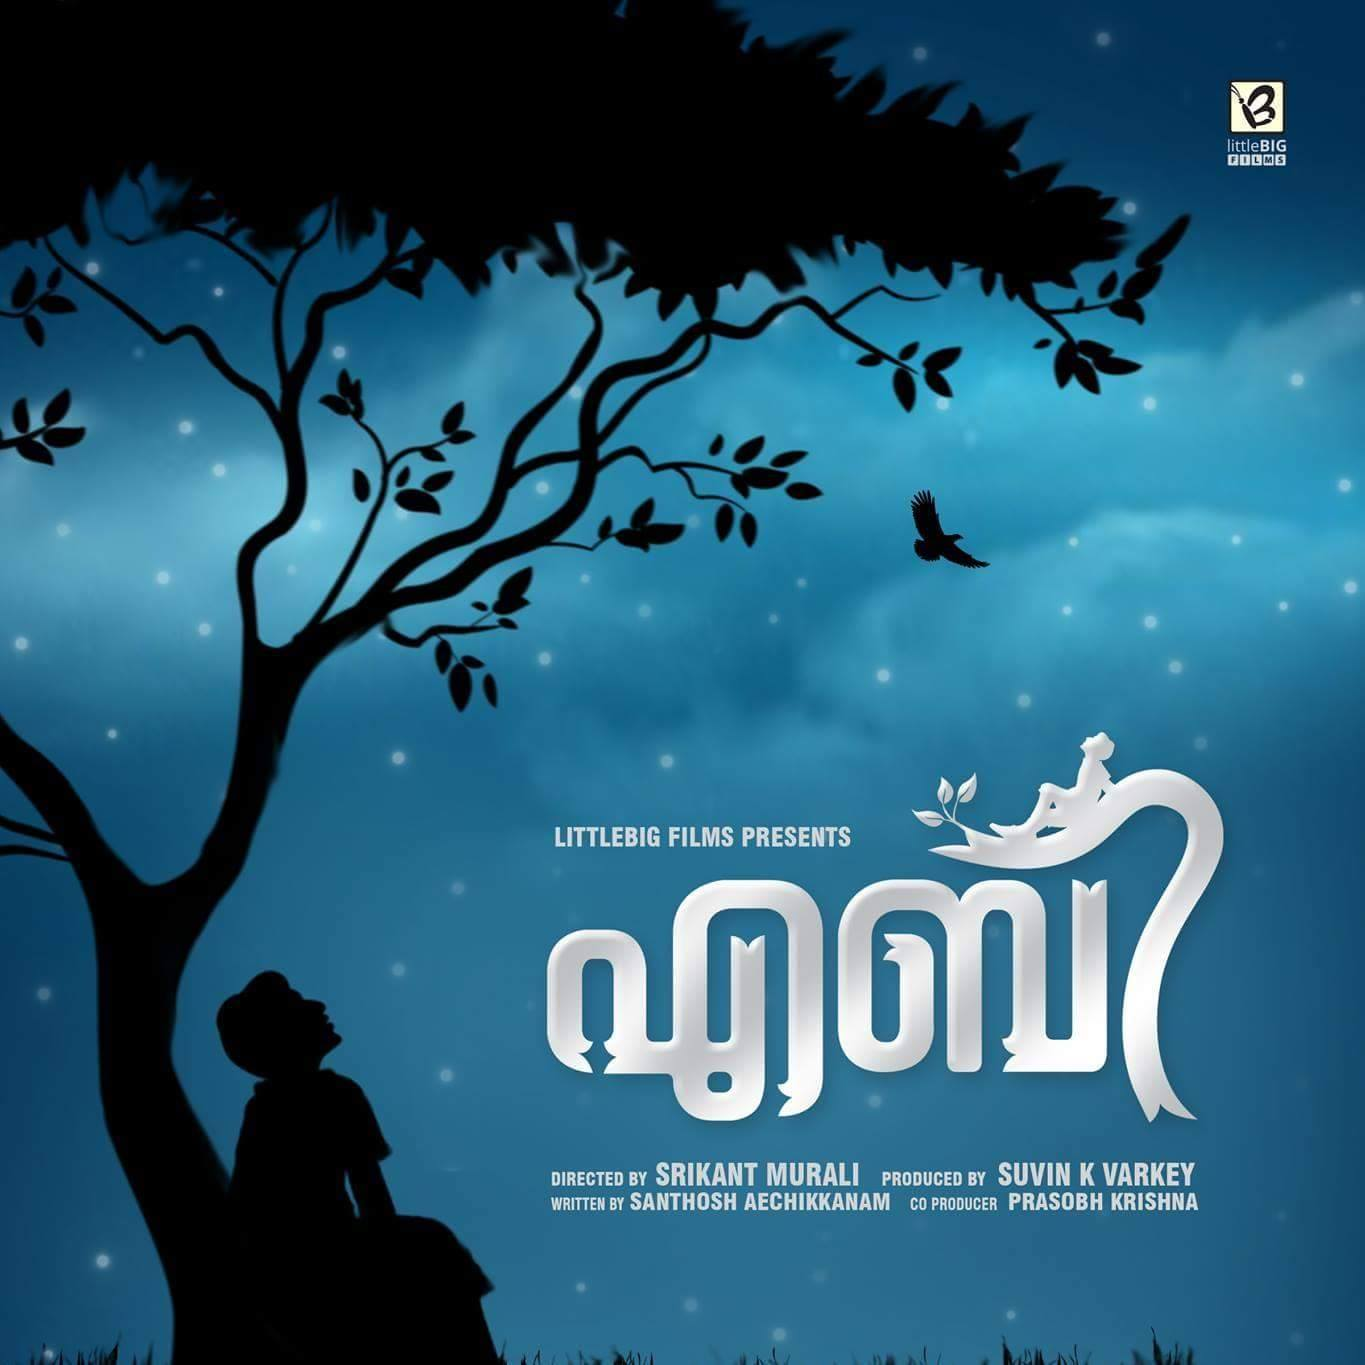 ABY Malayalam Movie DVD and VCD Released